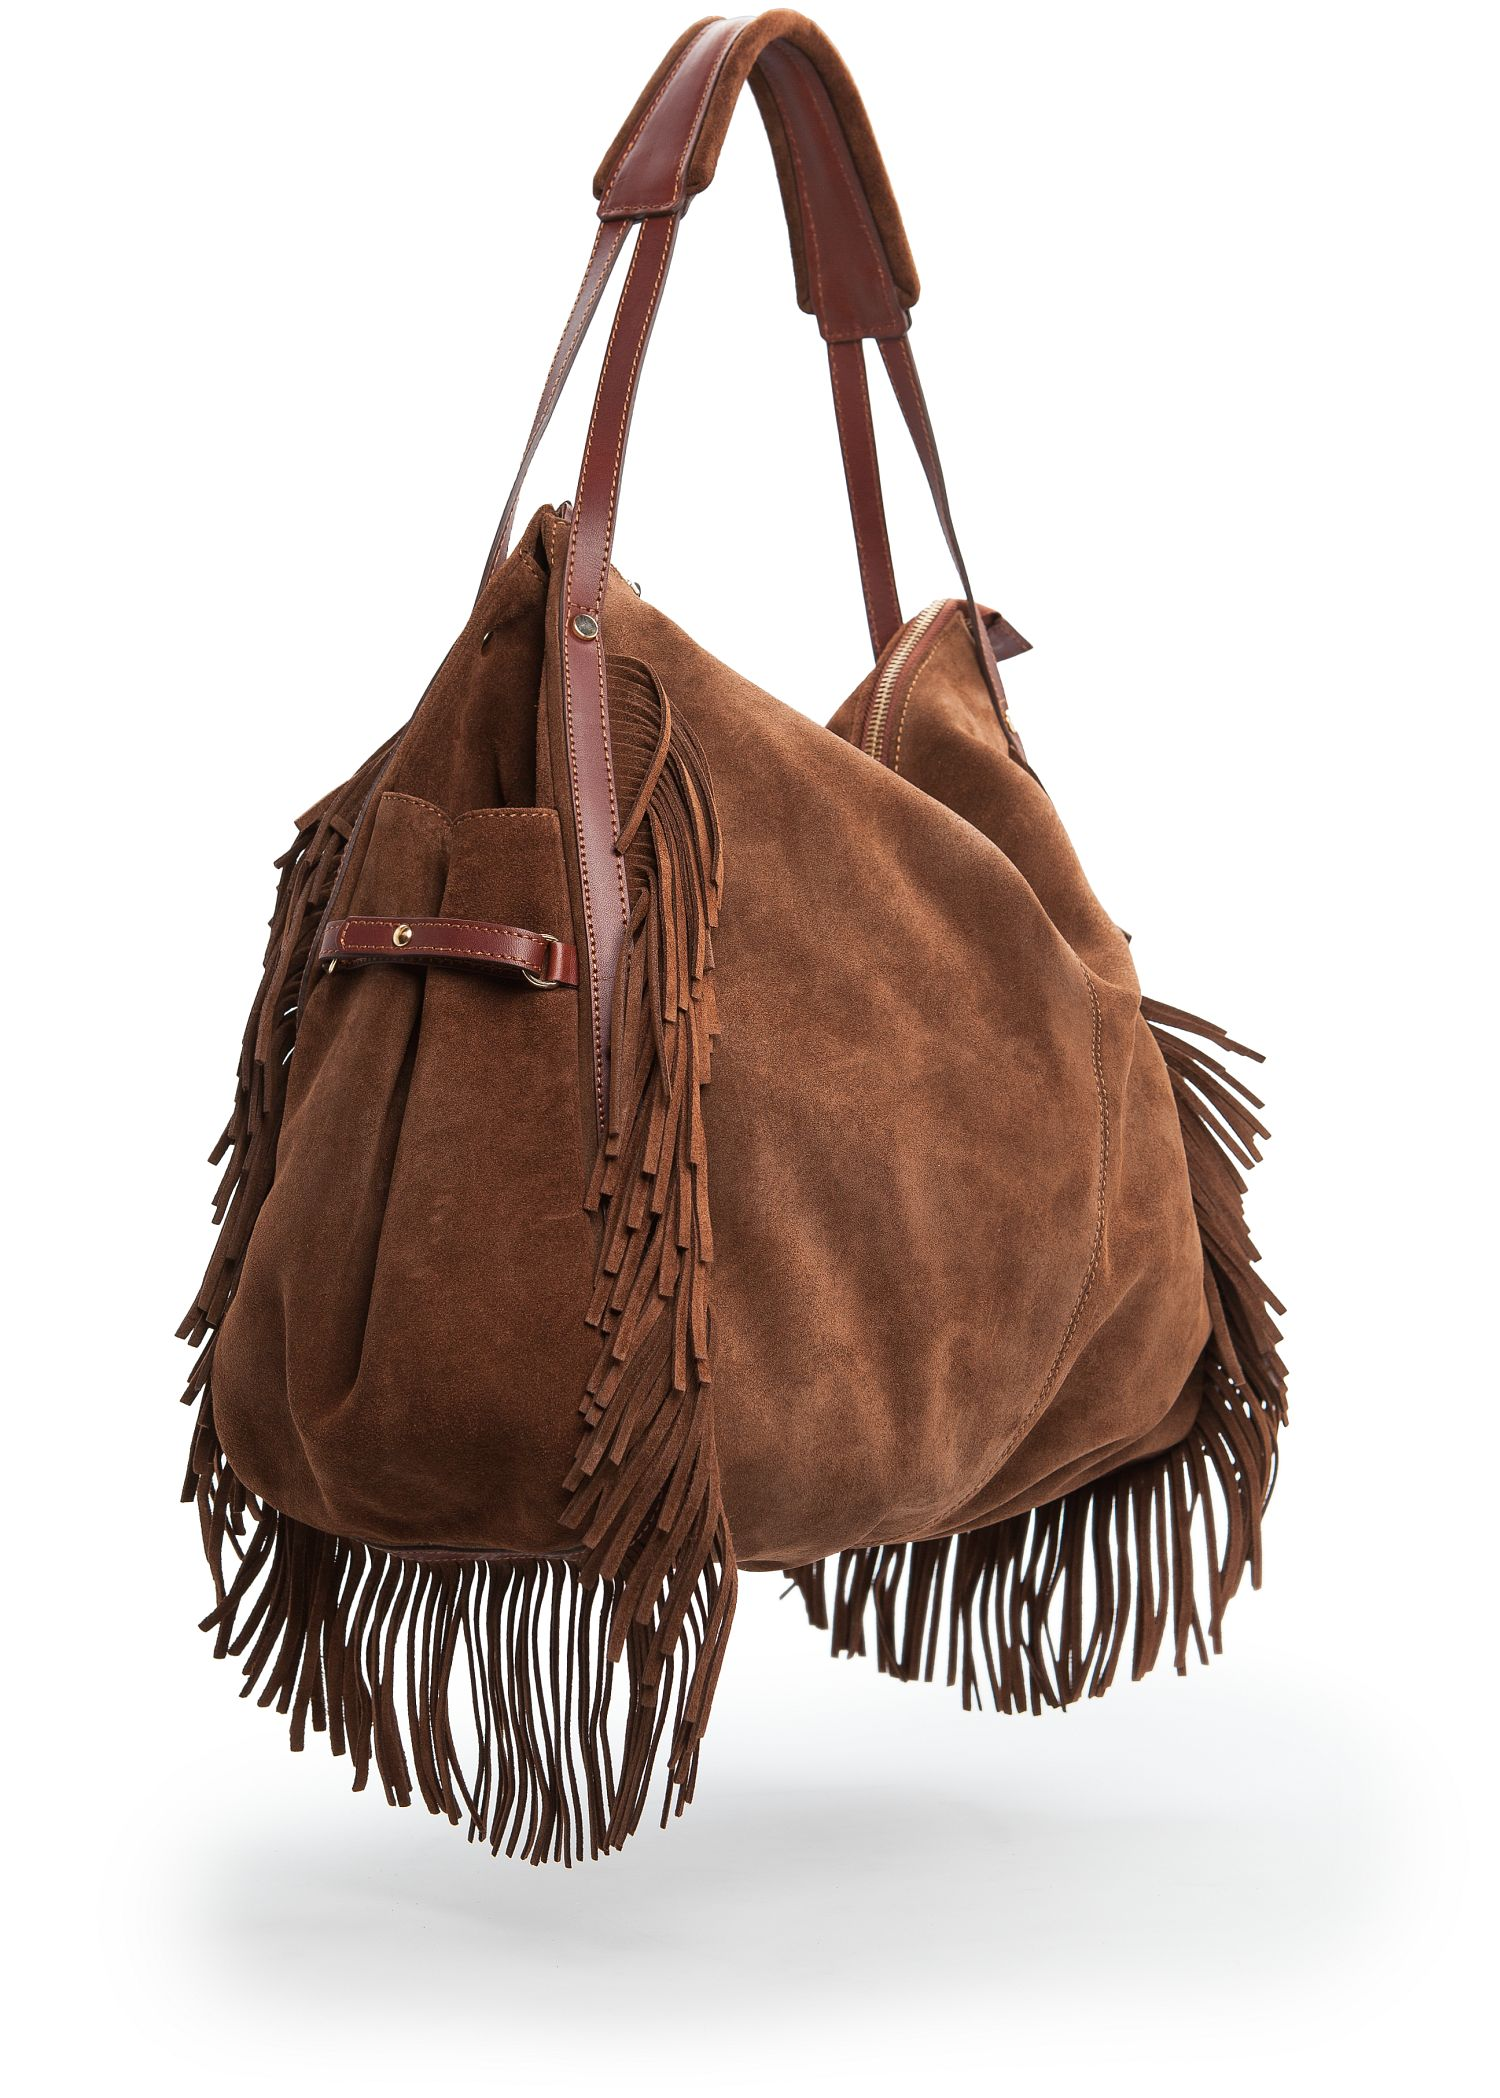 You searched for: suede fringe bag! Etsy is the home to thousands of handmade, vintage, and one-of-a-kind products and gifts related to your search. No matter what you're looking for or where you are in the world, our global marketplace of sellers can help you find unique and affordable options. Let's get started!